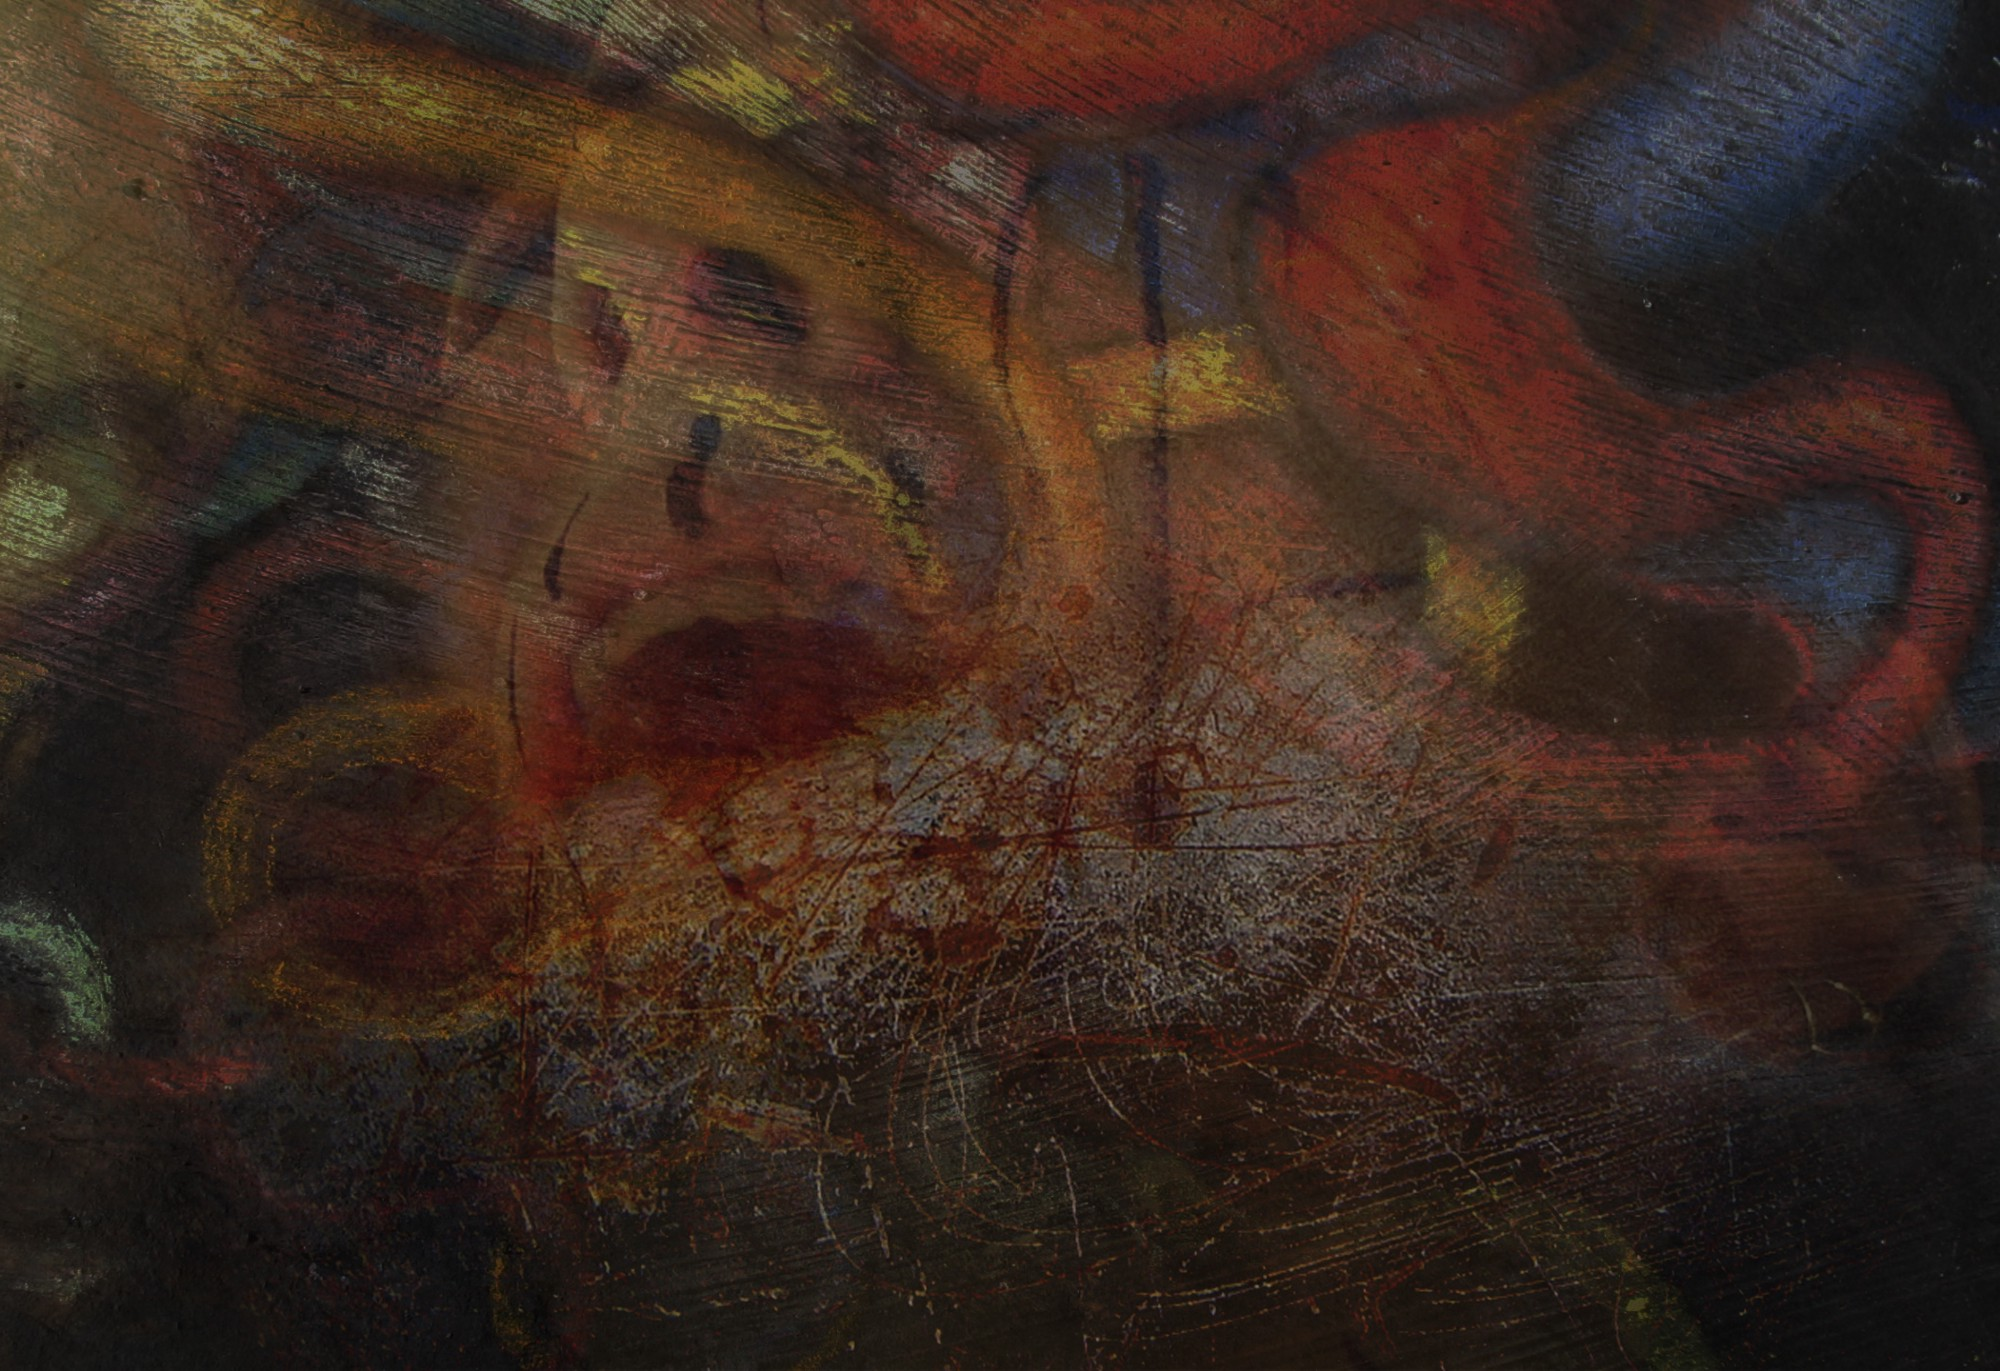 Composite image of an open mouth expressing pain, chalk drawn tentacles and scratched metal textures. The palette is dark.